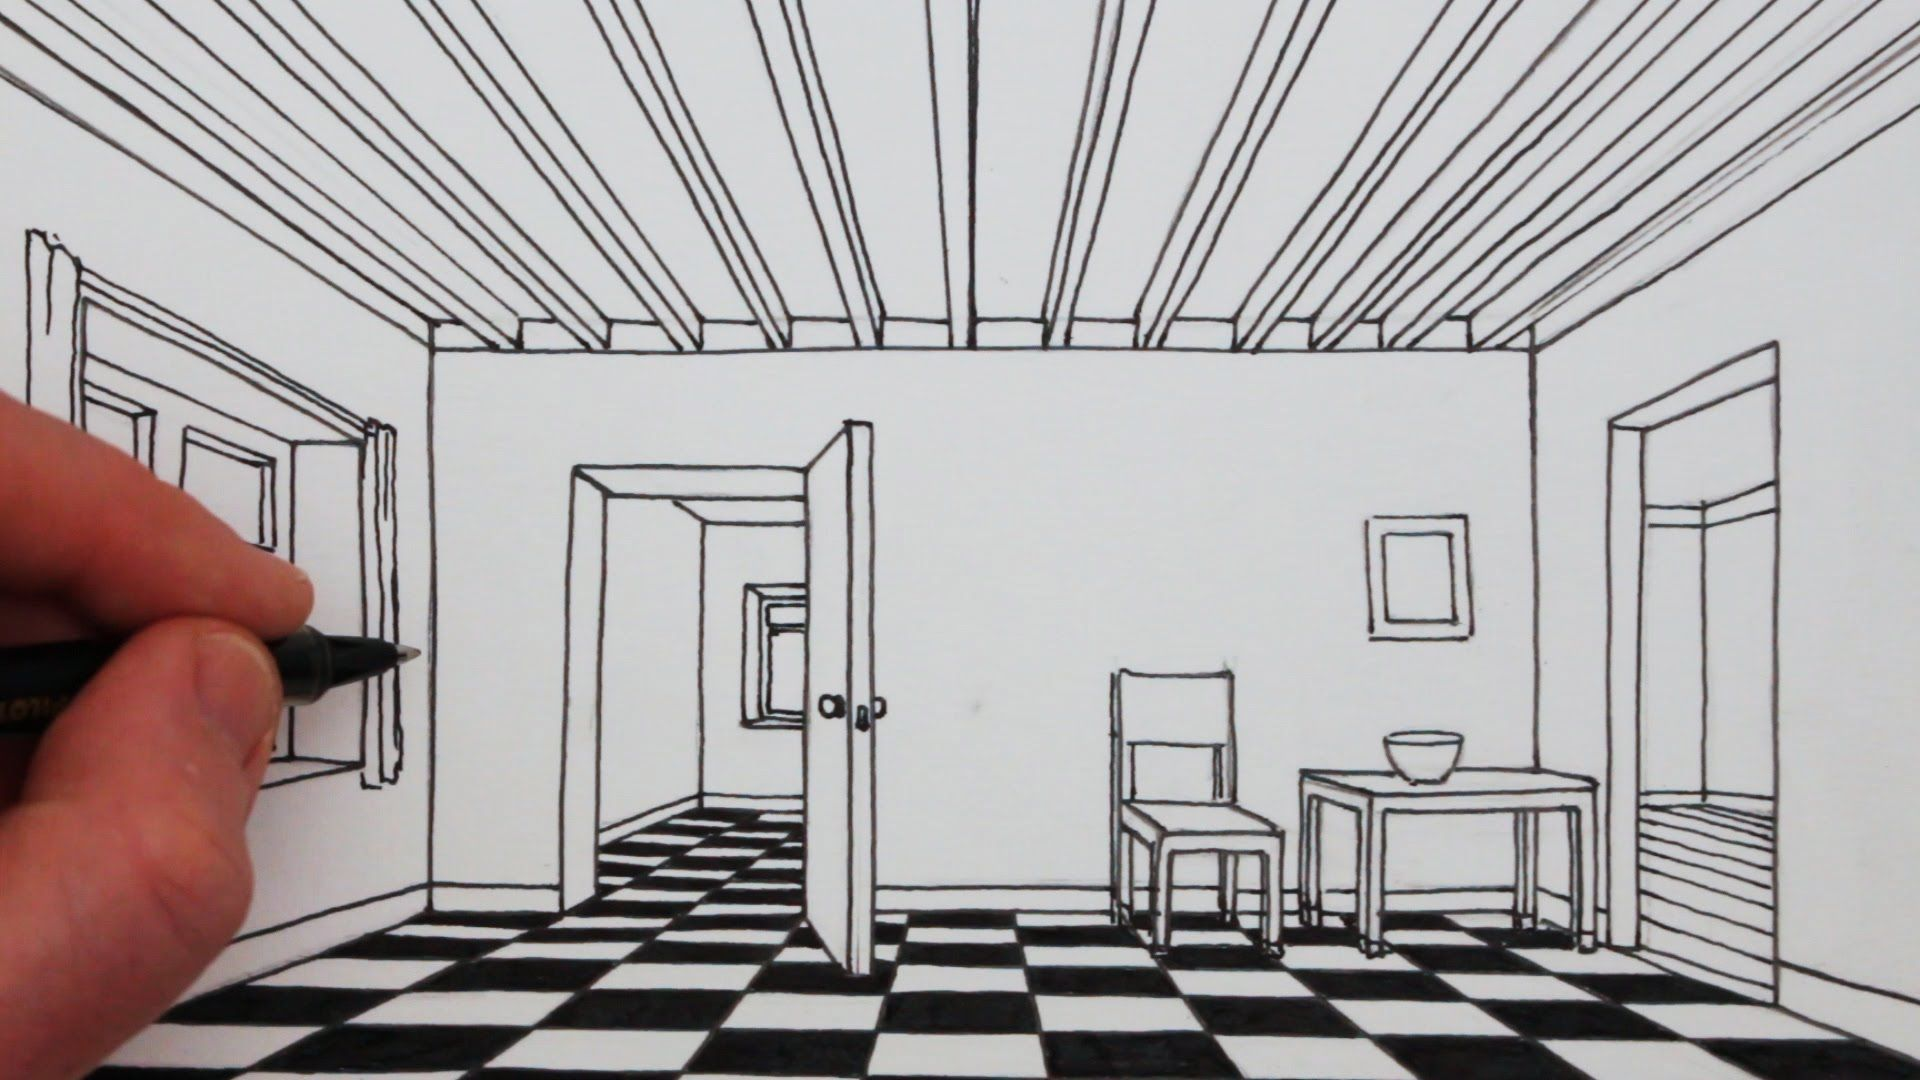 How To Draw A Room In 1 Point Perspective Narrated Drawing Perspective Room One Point Perspective Room One Point Perspective